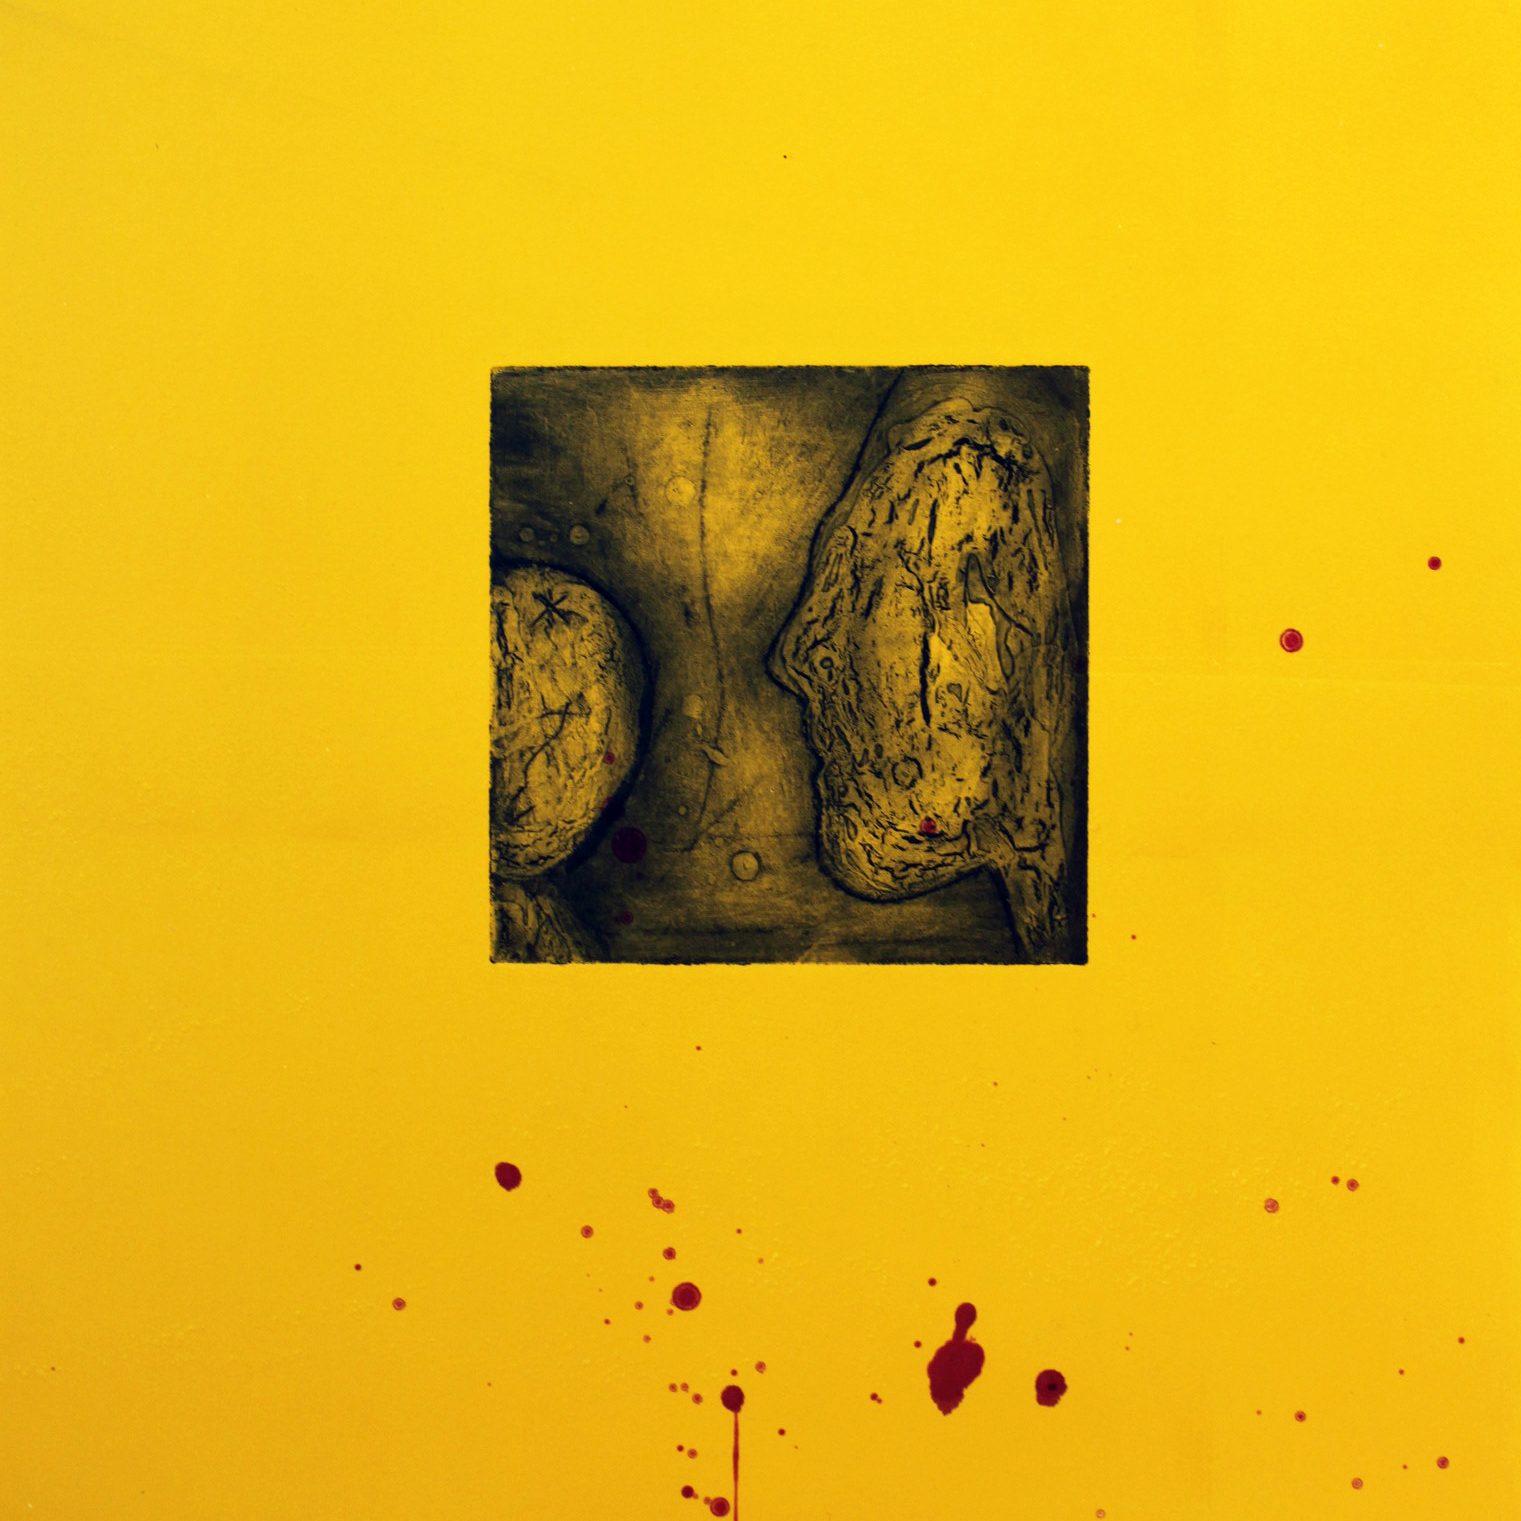 Untitled – Yellow, Collagraph and Monoprint (Collaborative Works from the Exhibition 'Ellipsis') (Approx 37 x 37cm on Hanhemuhle Paper)